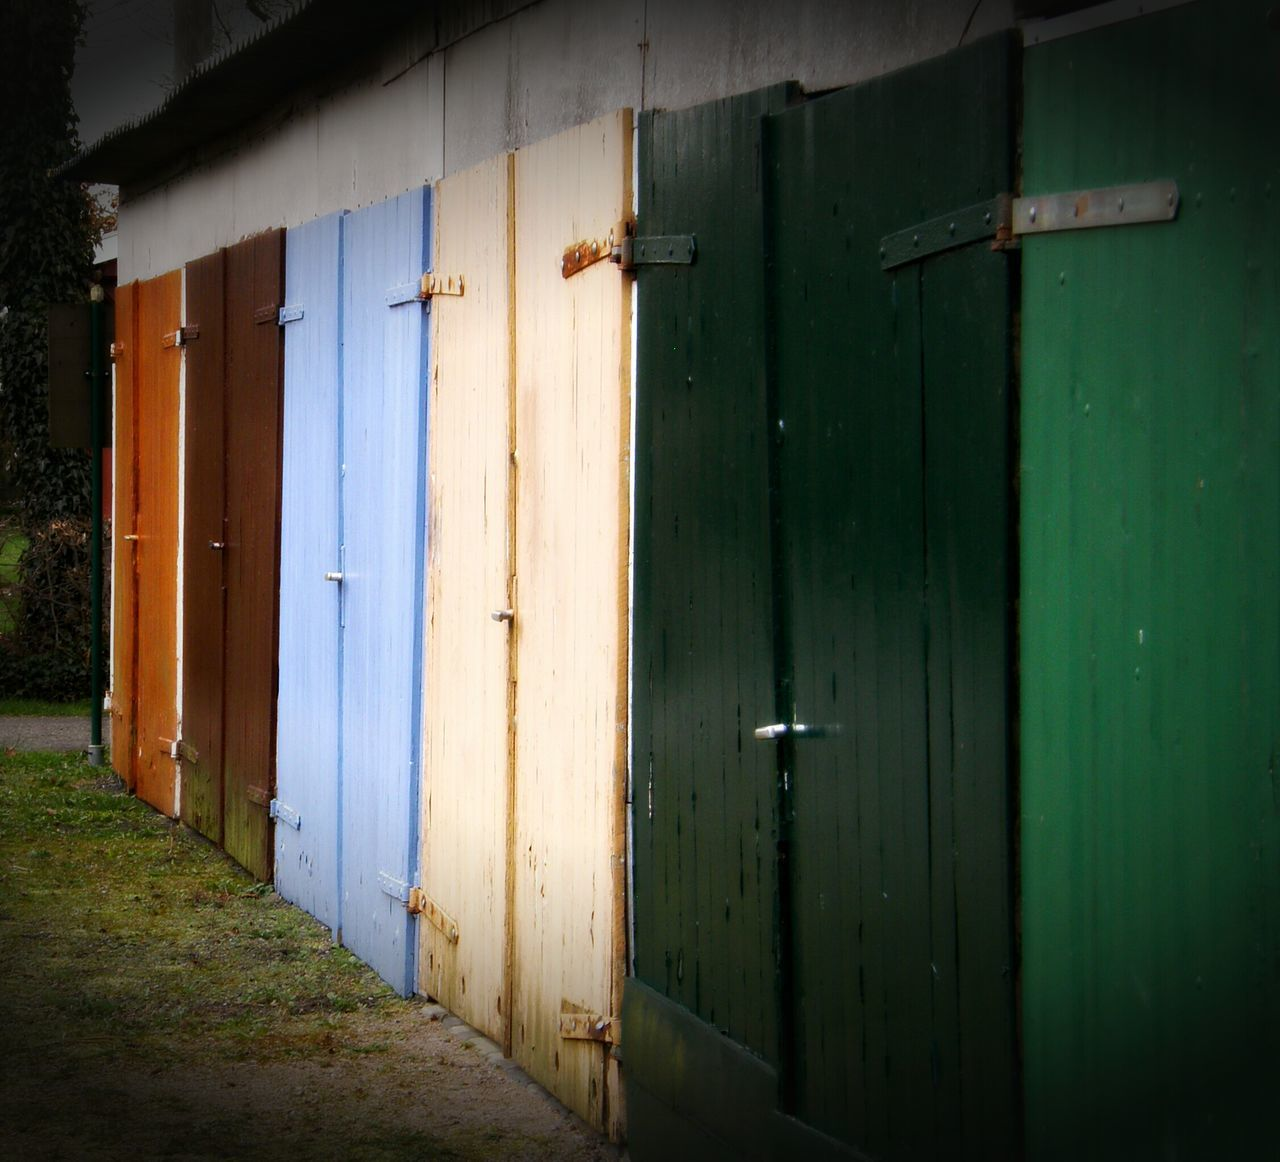 Garage Doors Colorful Outdoor Photography No People